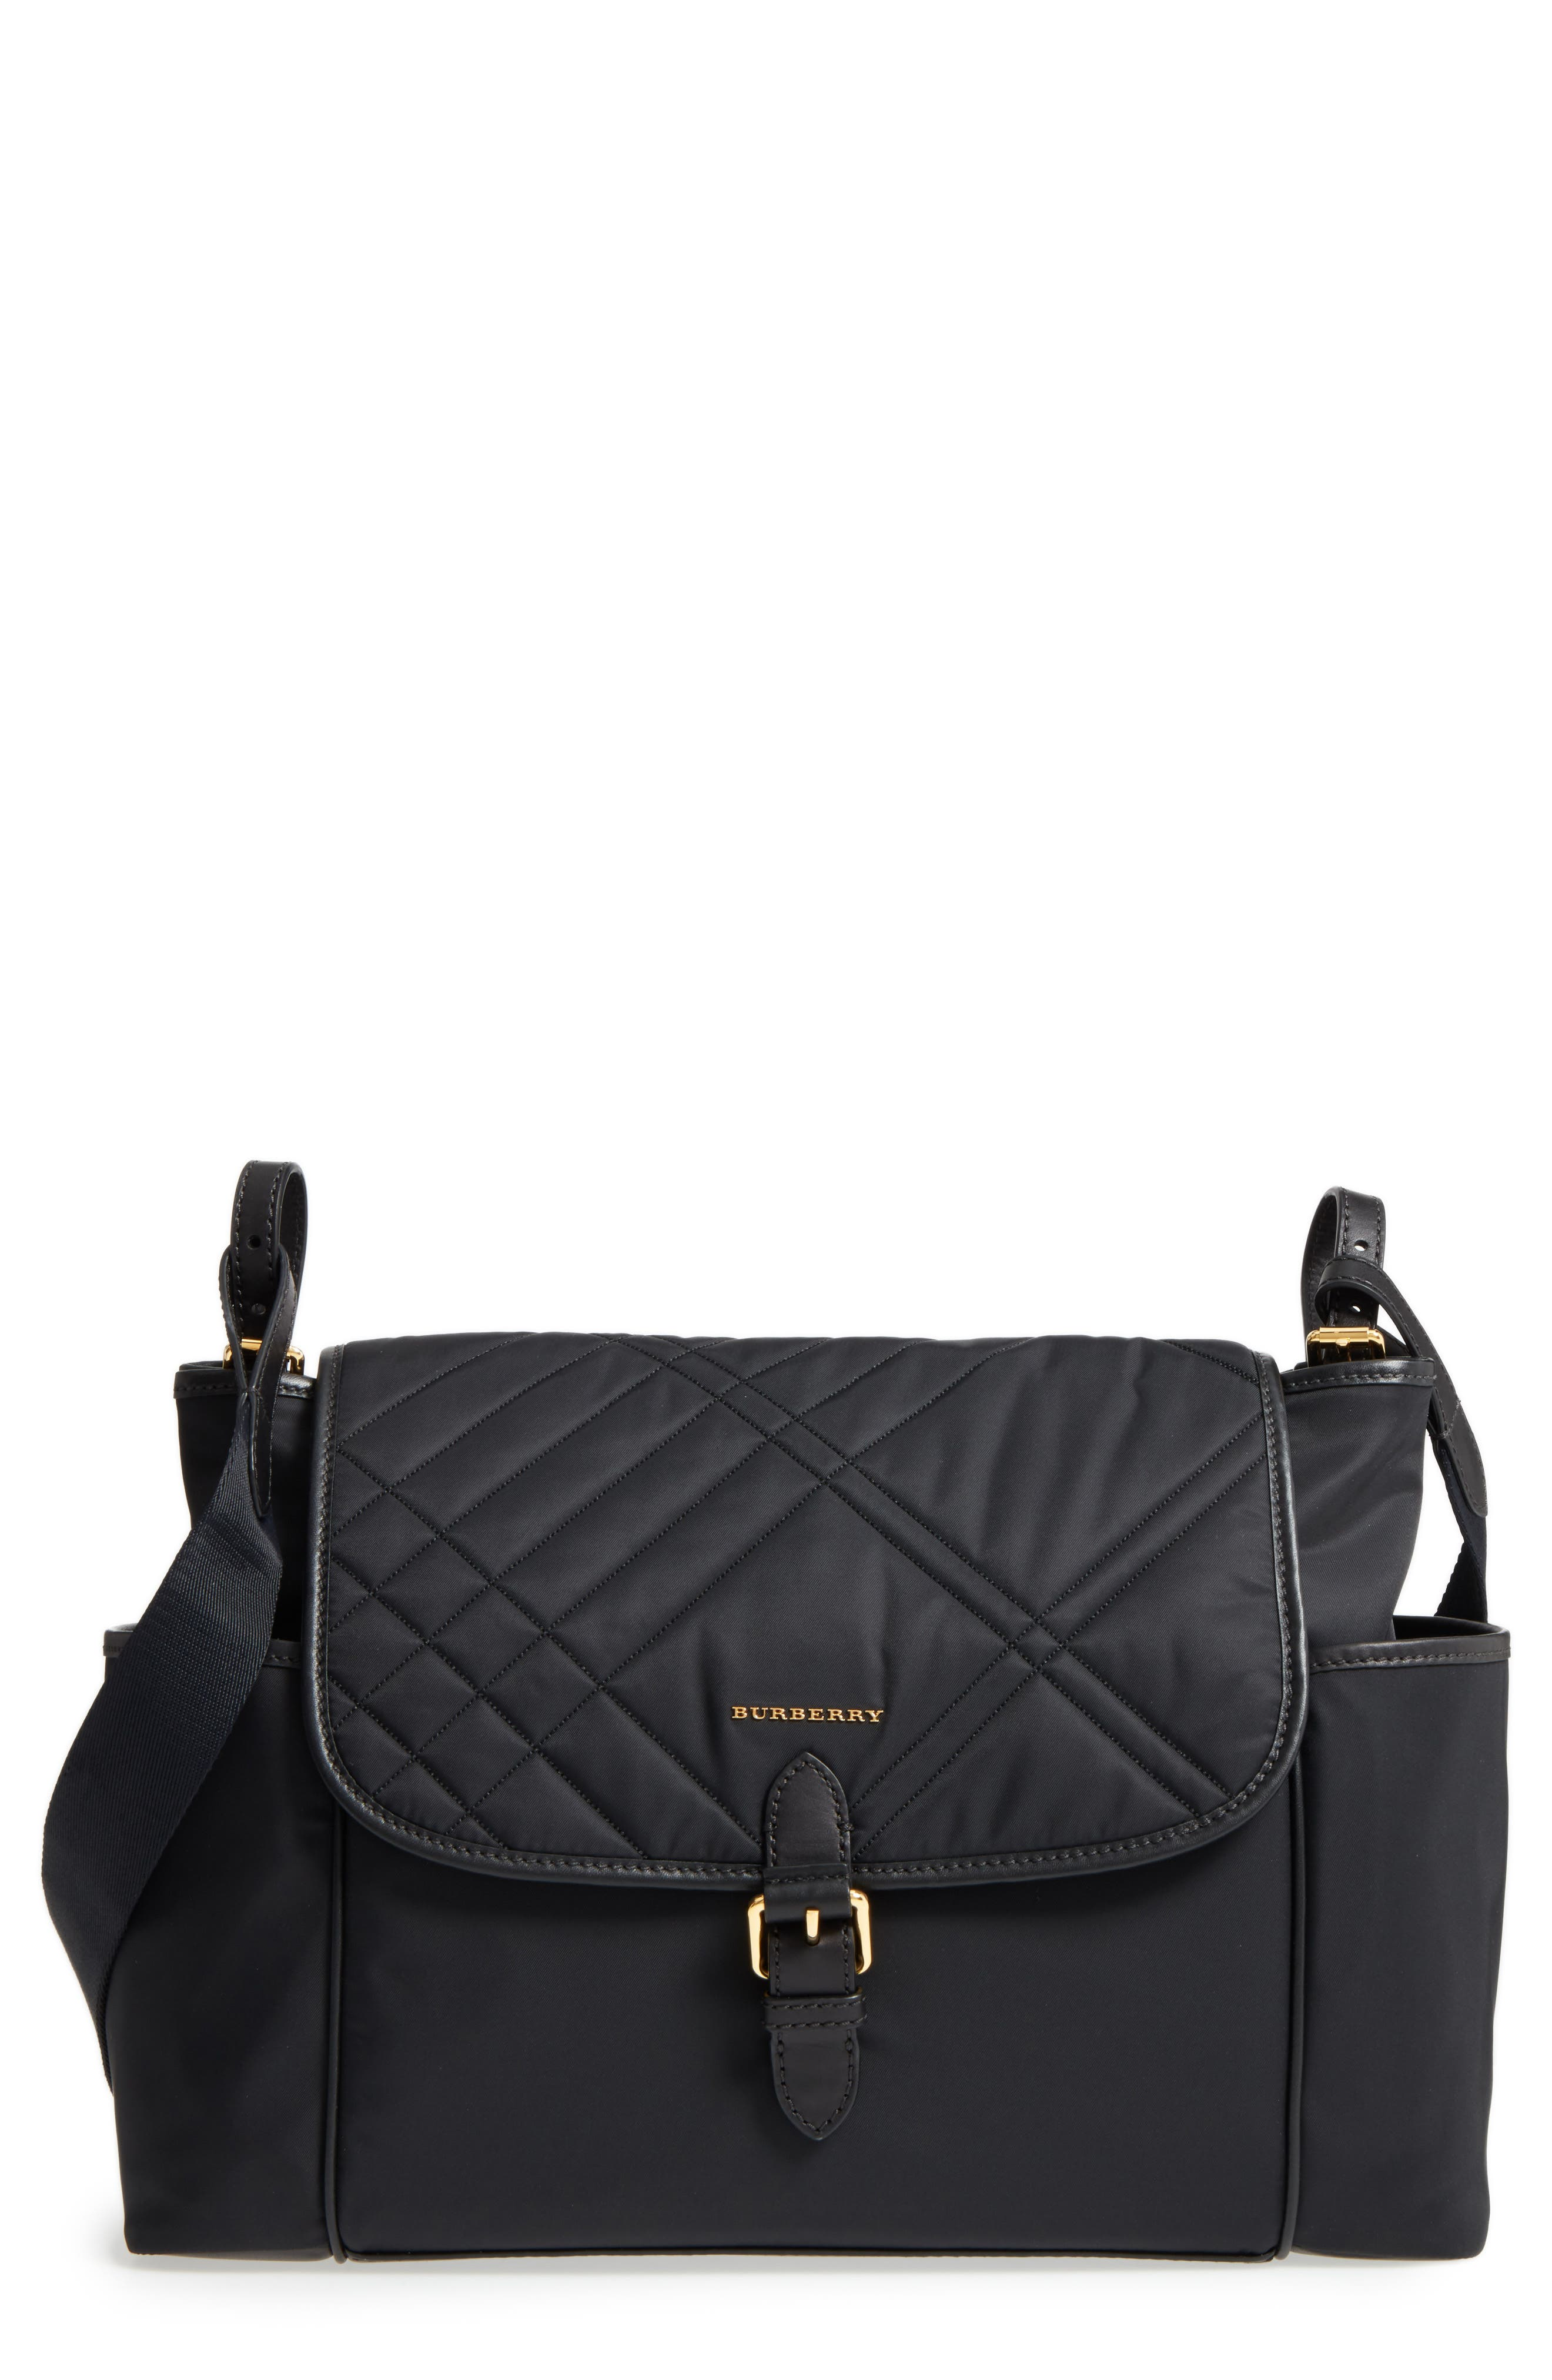 Burberry Check Quilted Flap Diaper Bag